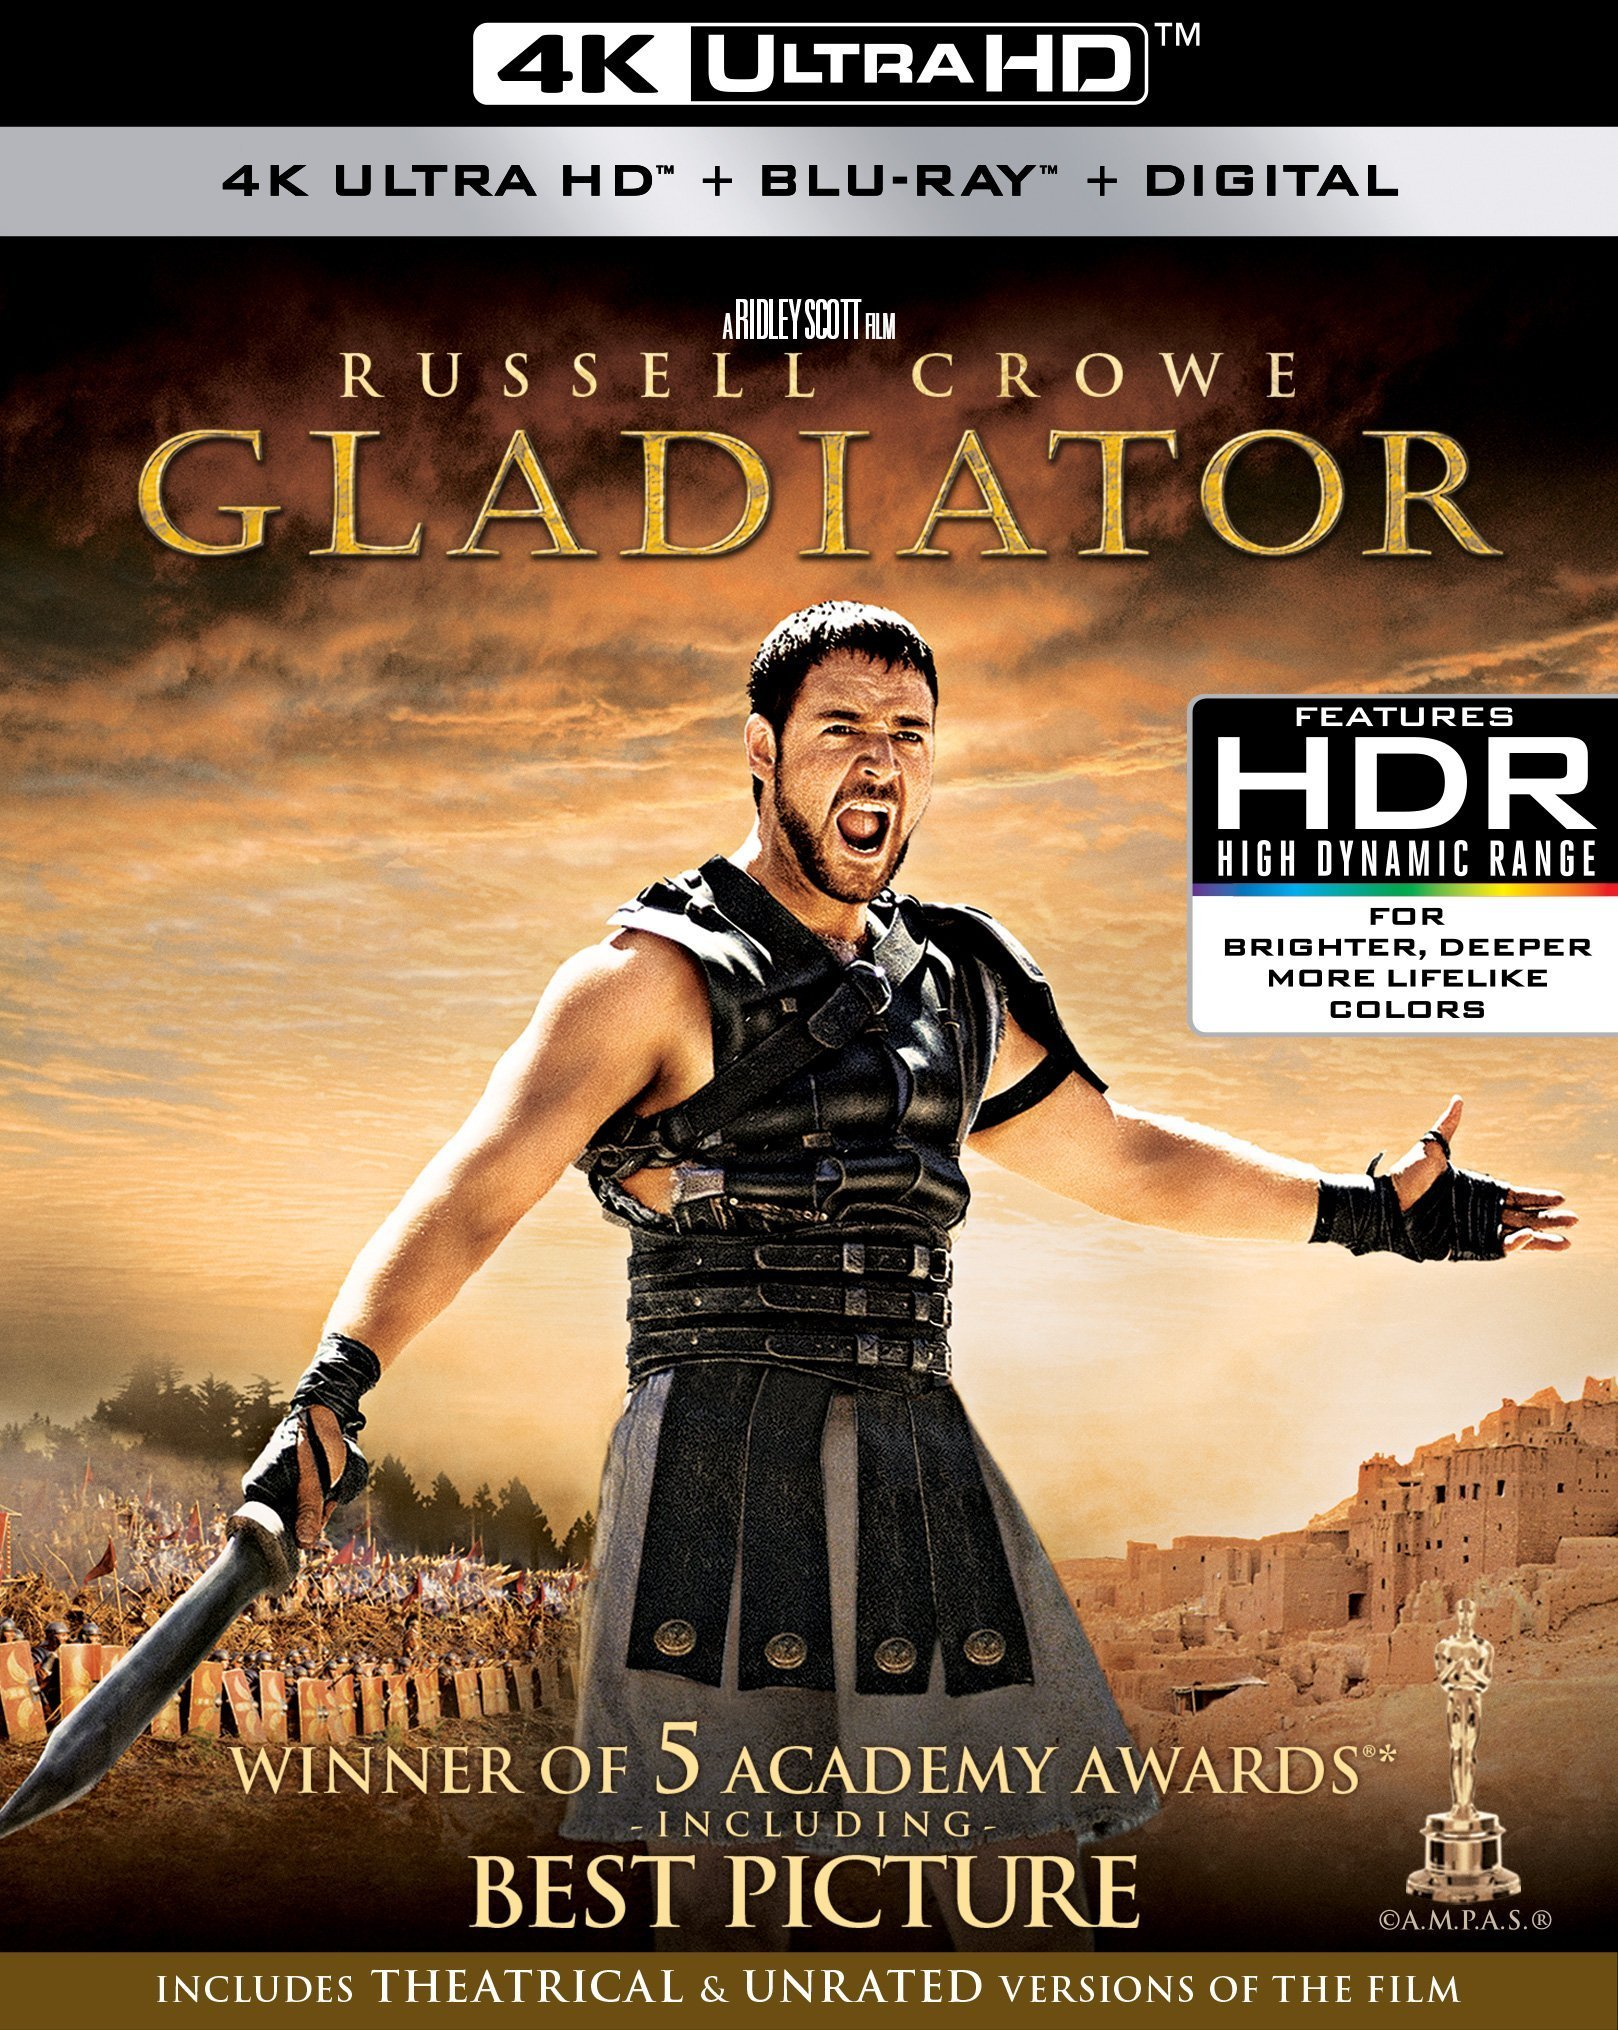 Gladiator 4K (2000) Ultra HD Blu-ray